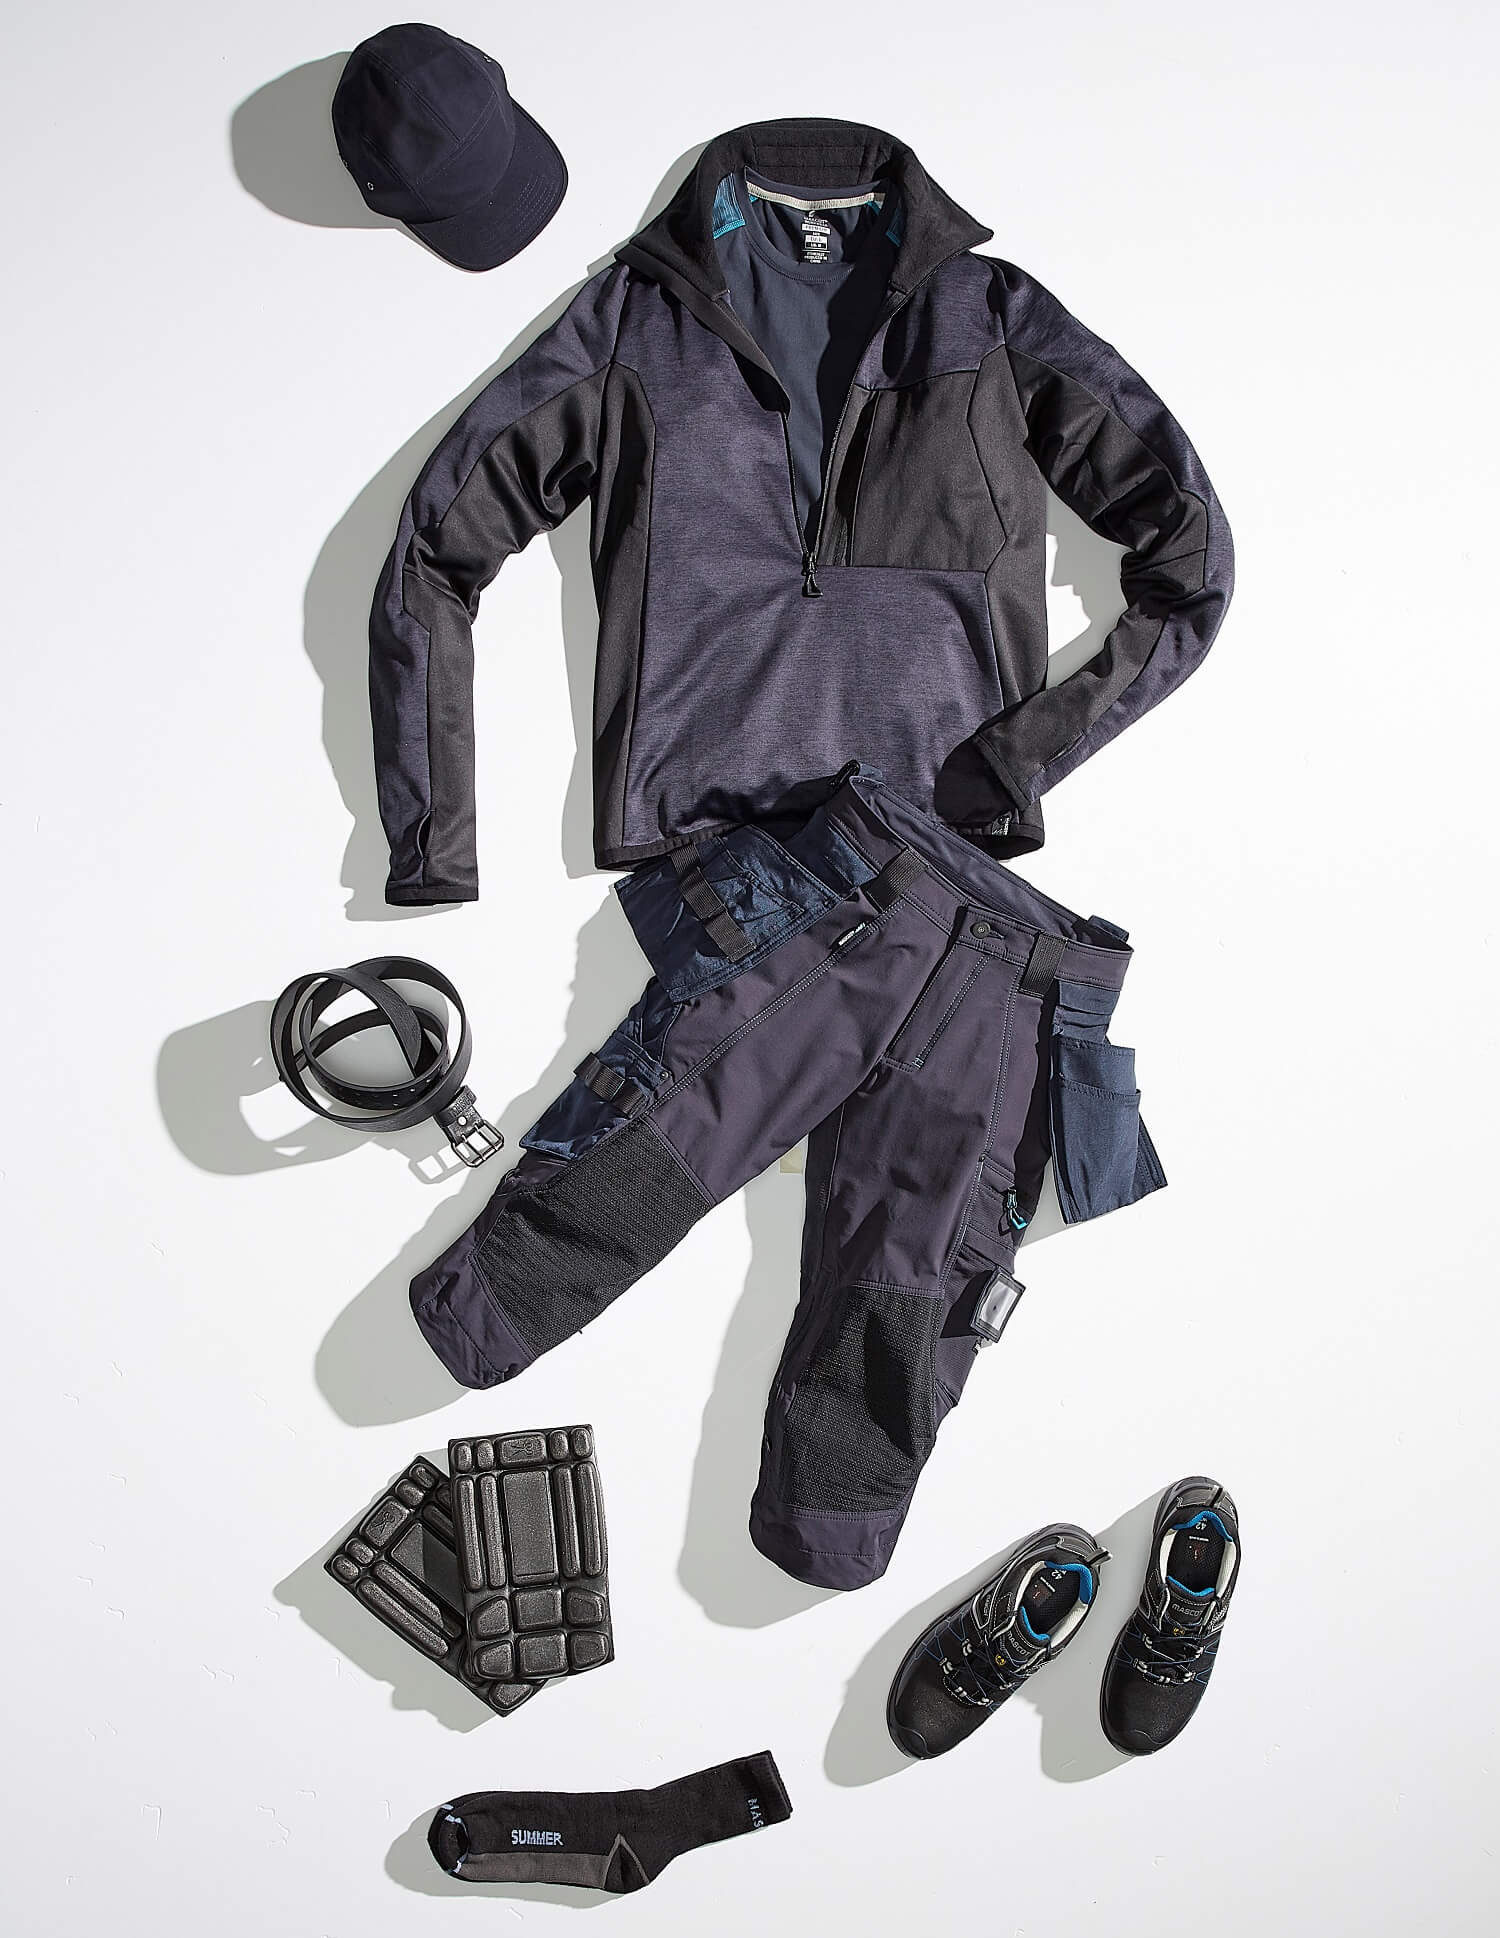 Navy - Work Jacket, ¾ length pants, Safety Shoe & Accessories - Collage